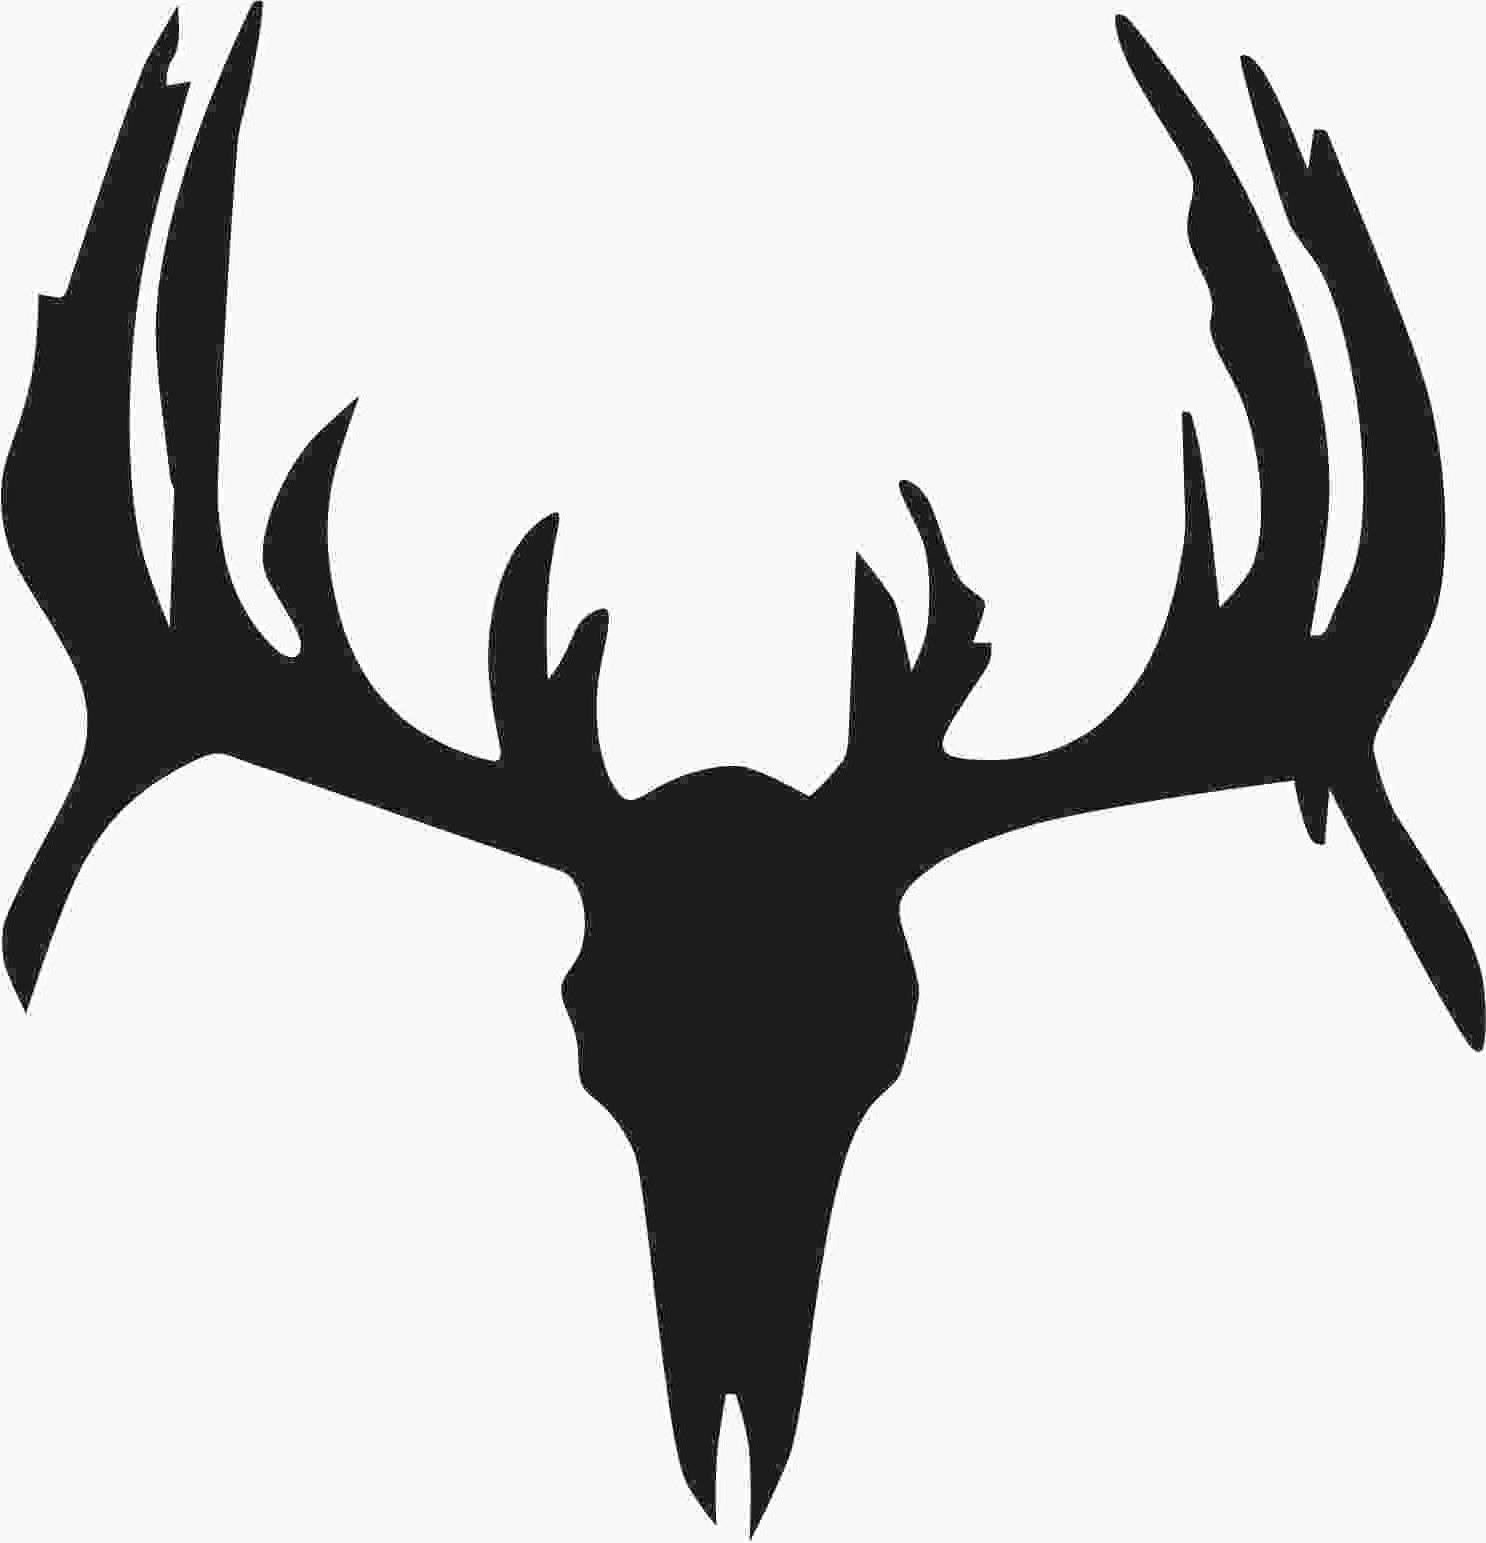 1486x1543 Hd Whitetail Deer Skull Outline Drawings Vector Free Free